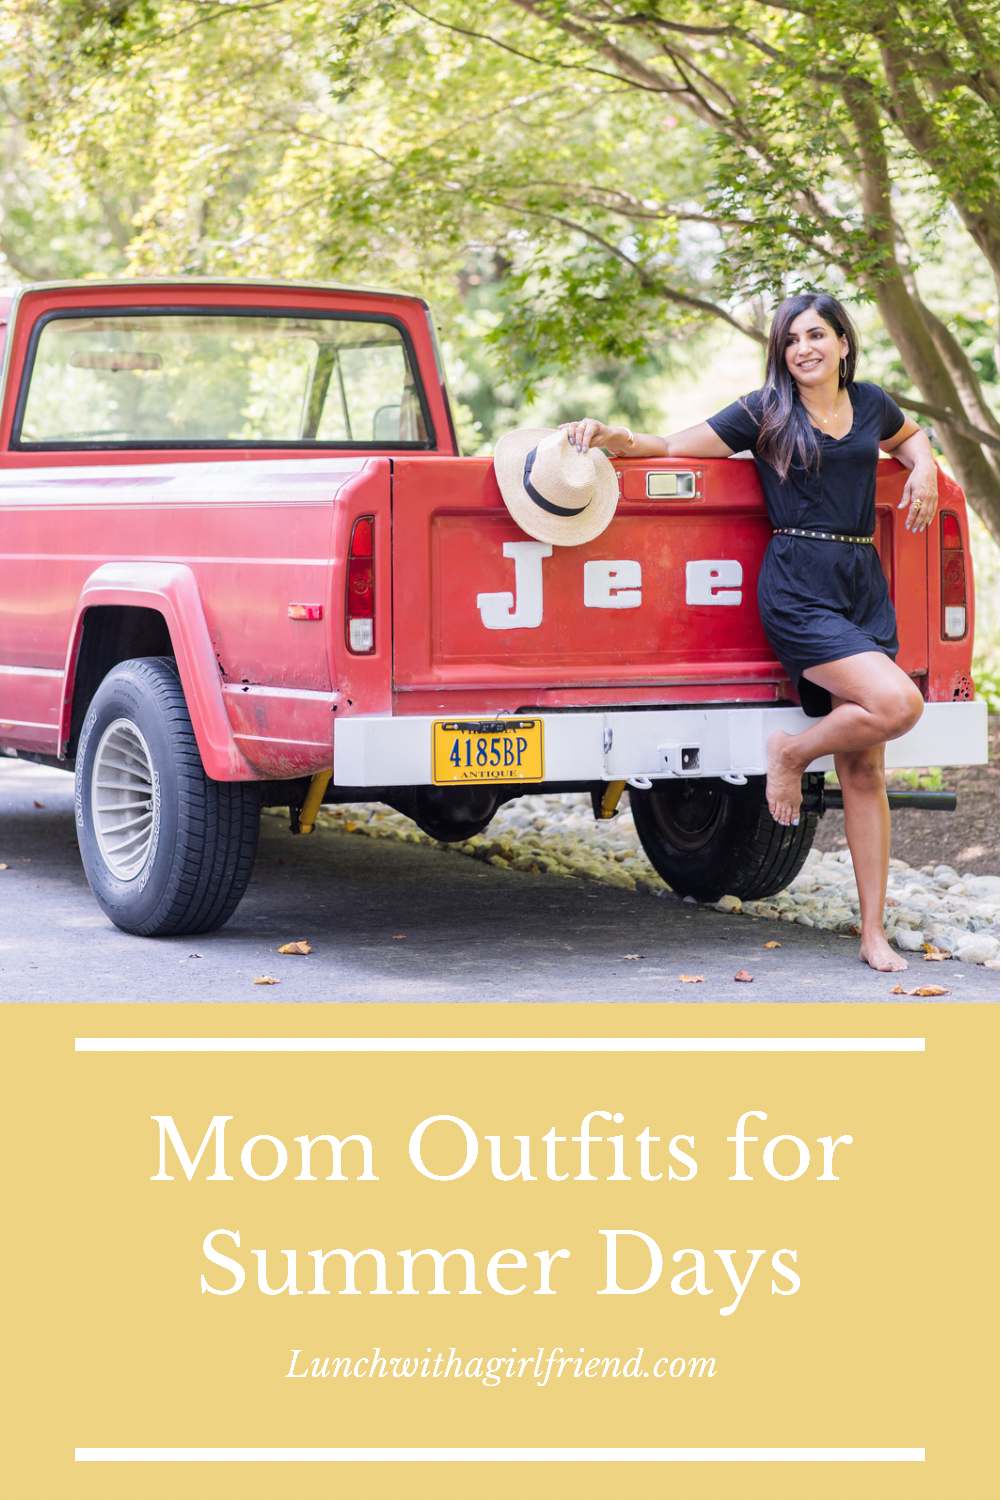 Mom Outfit Ideas